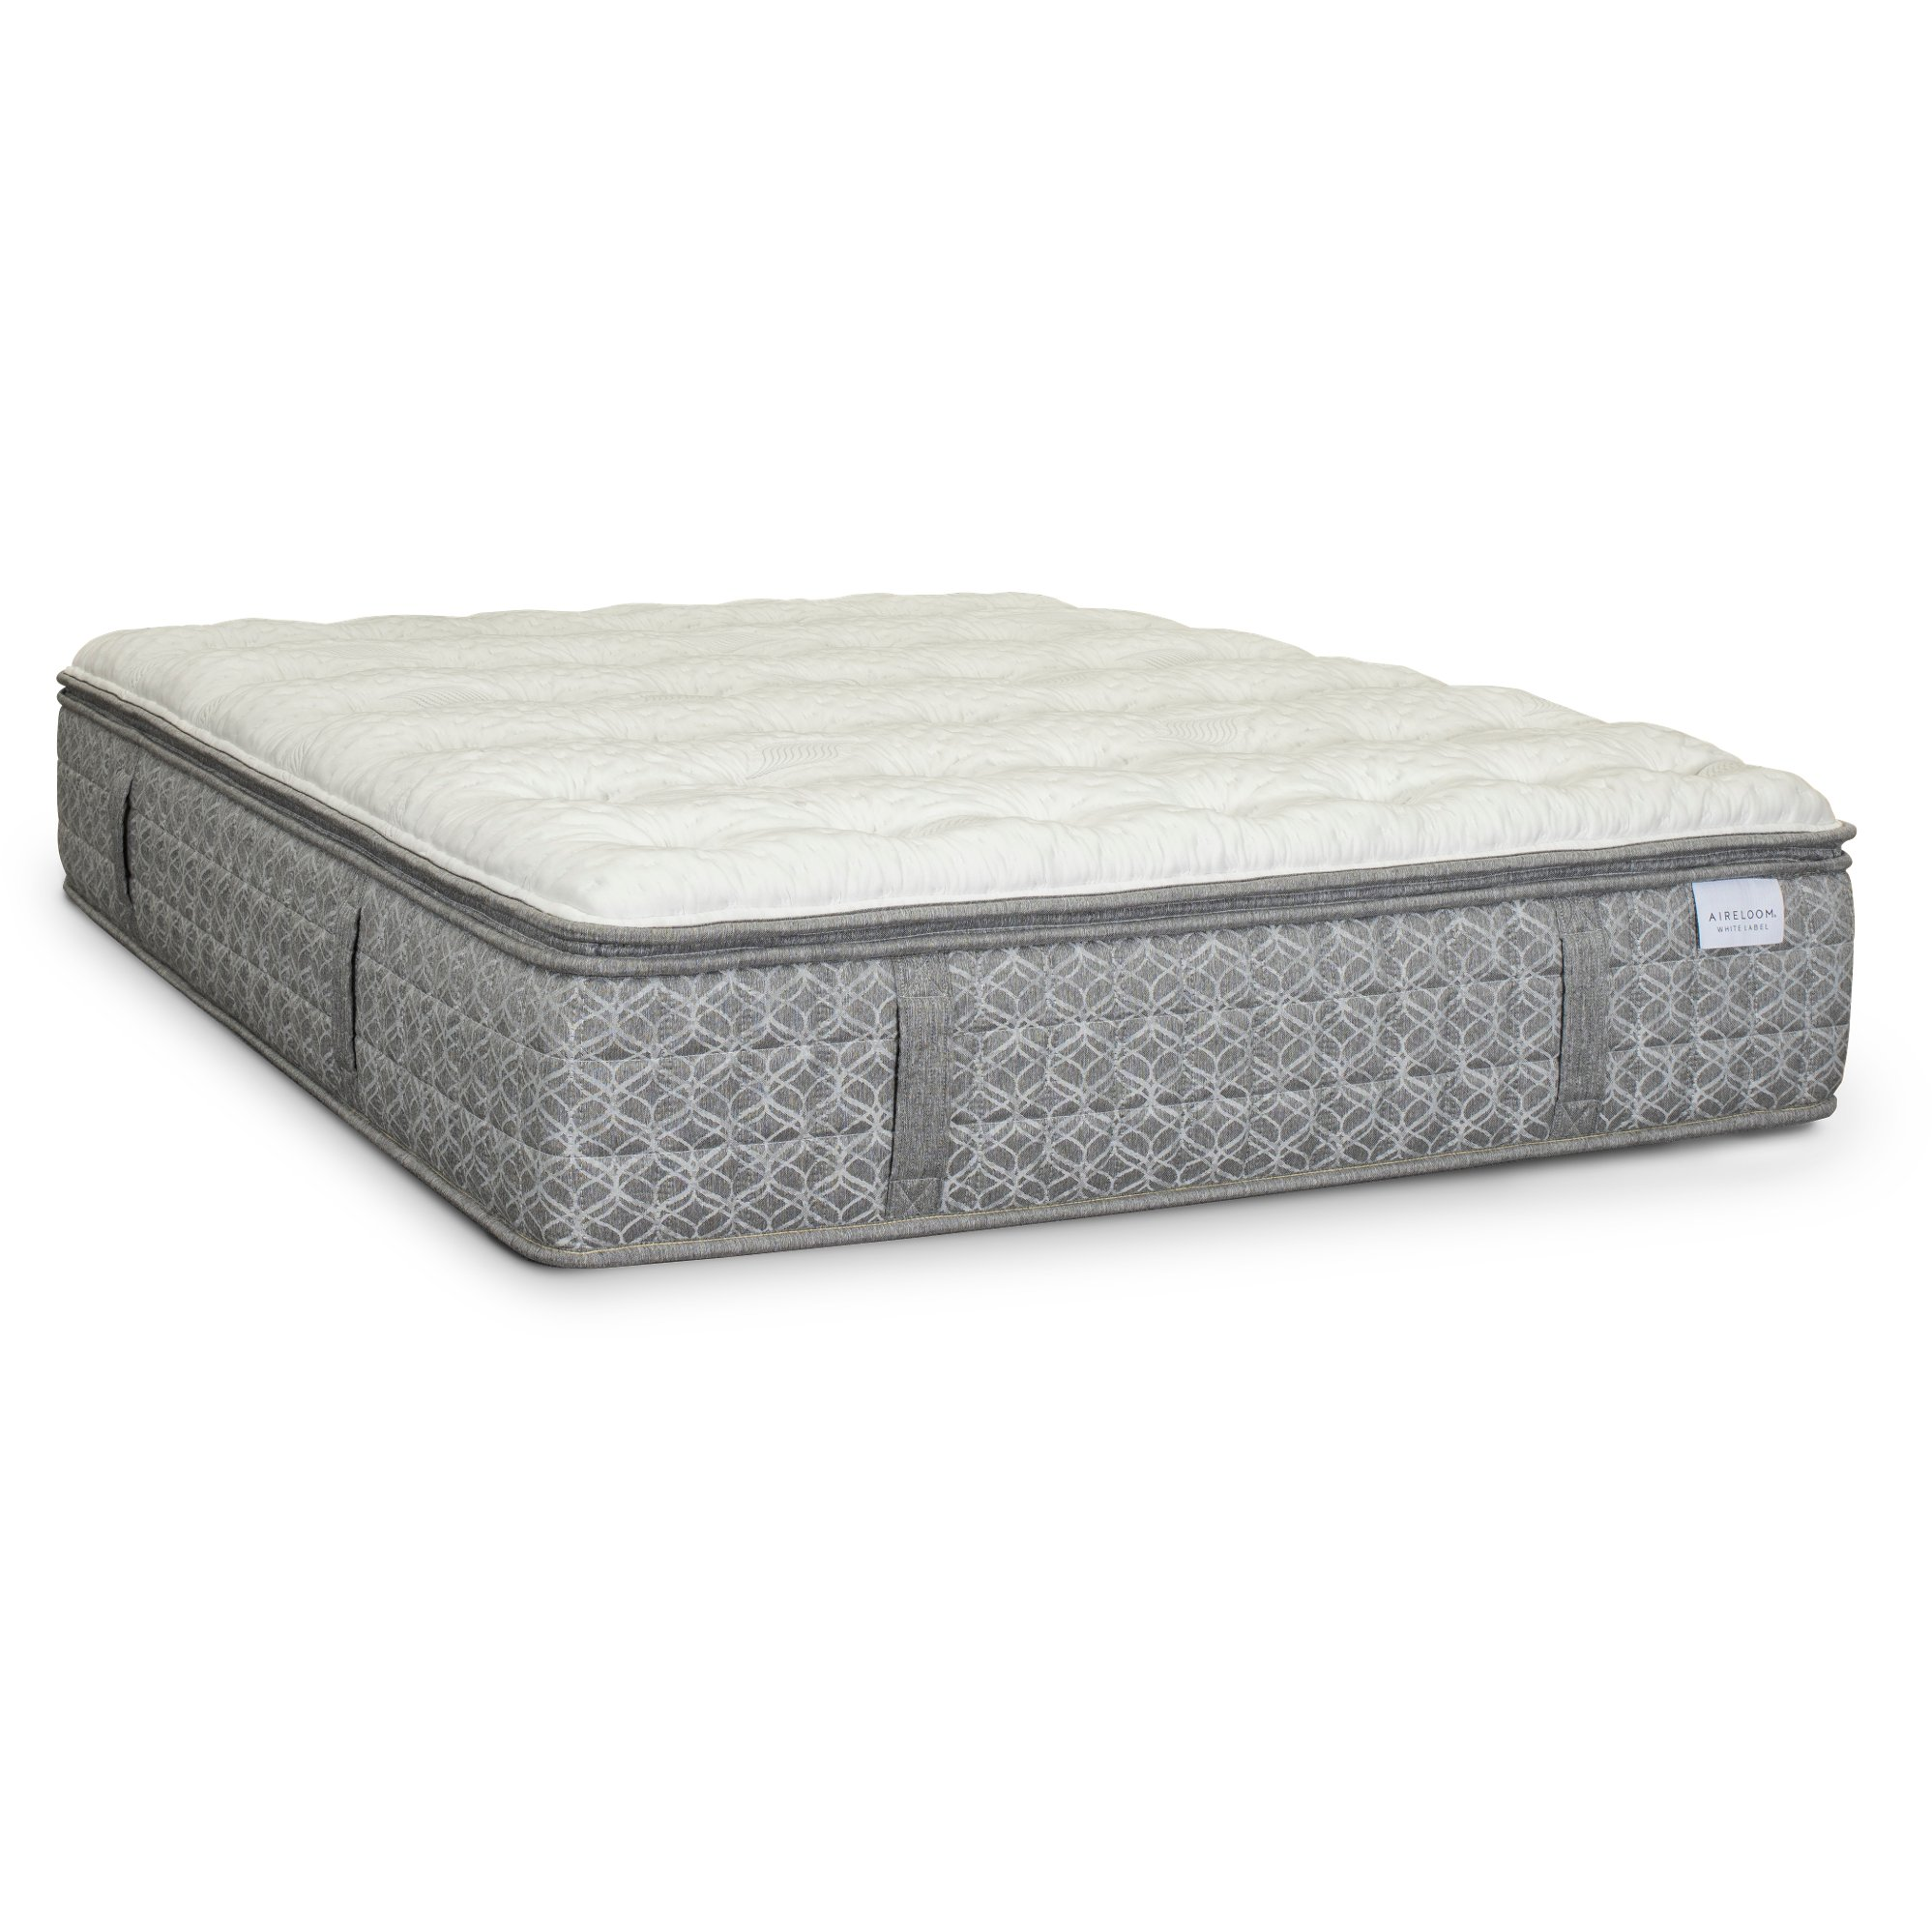 Luxetop Firm Split King Mattress